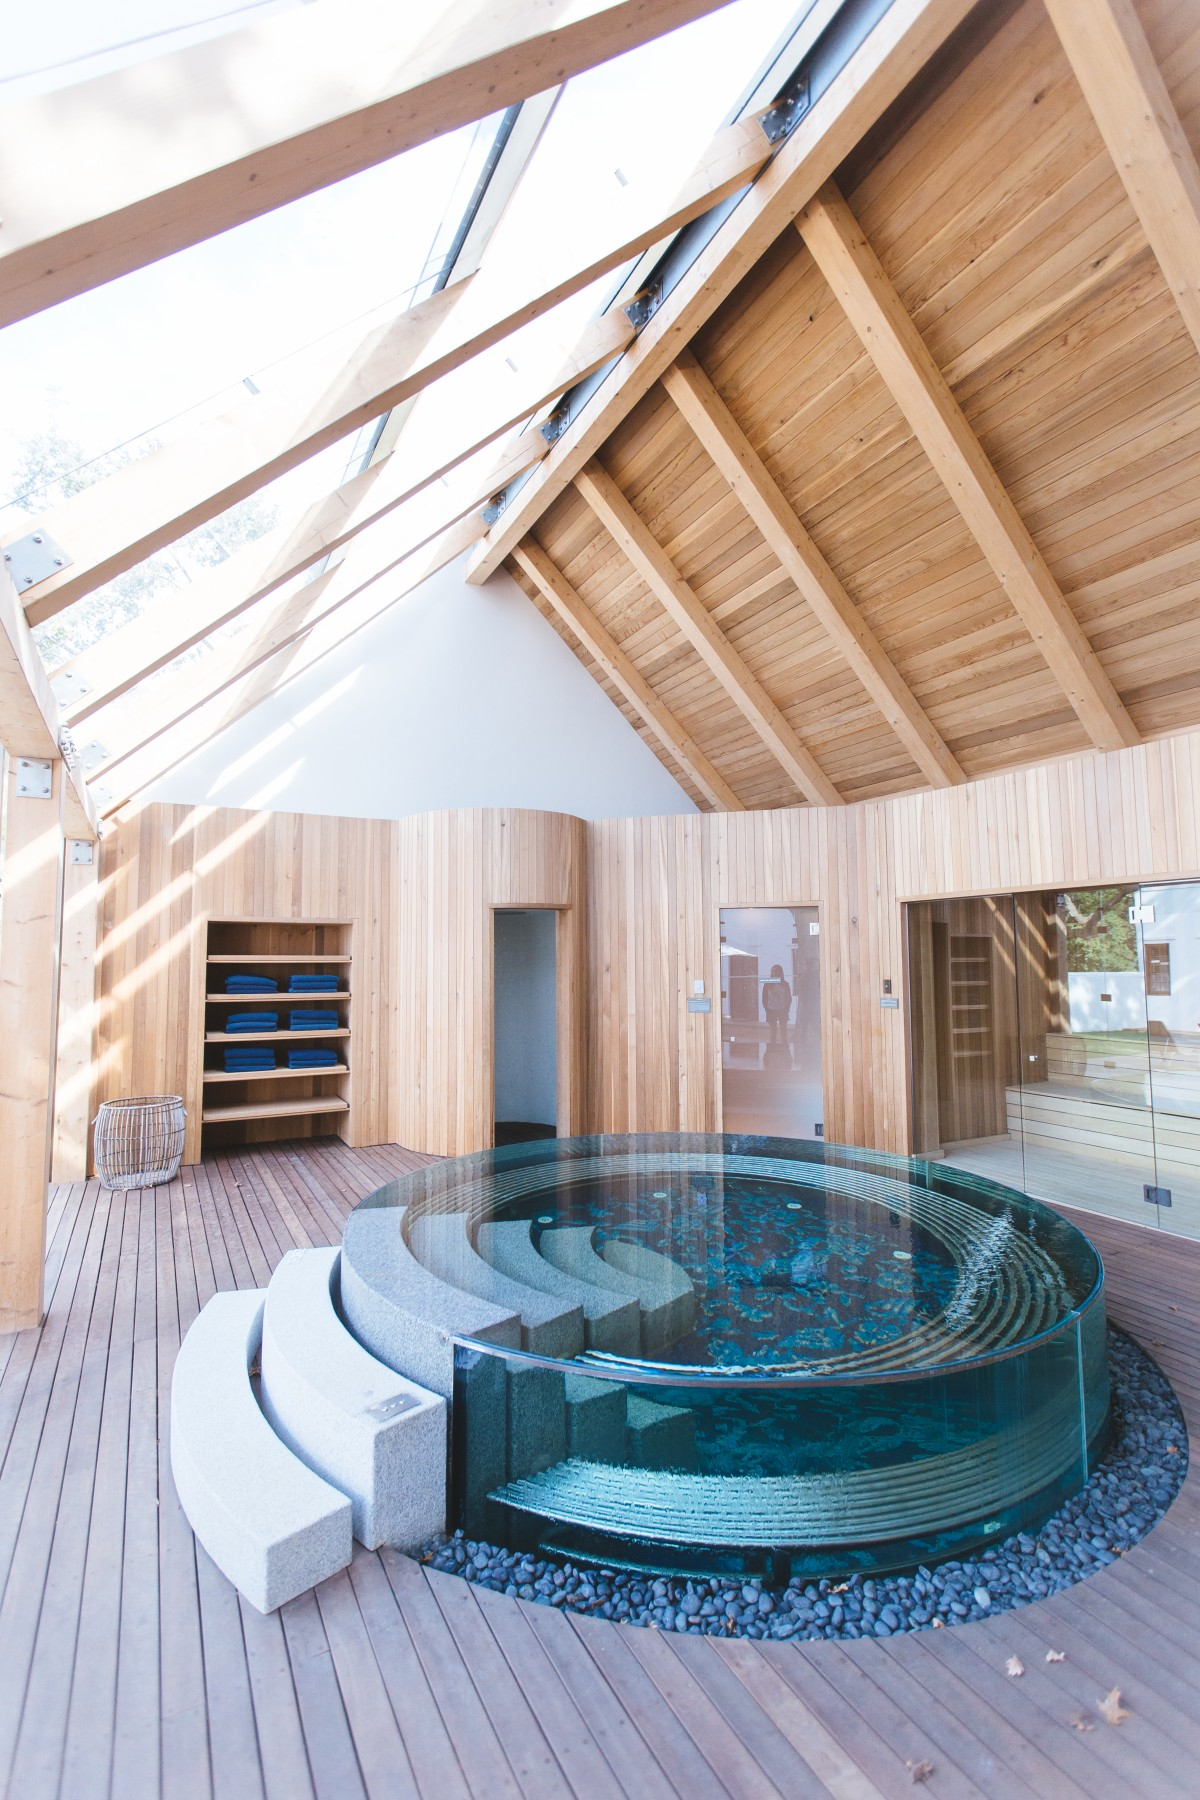 Awesome Hot Tub Deck Design Photograph Of Bathtub Style